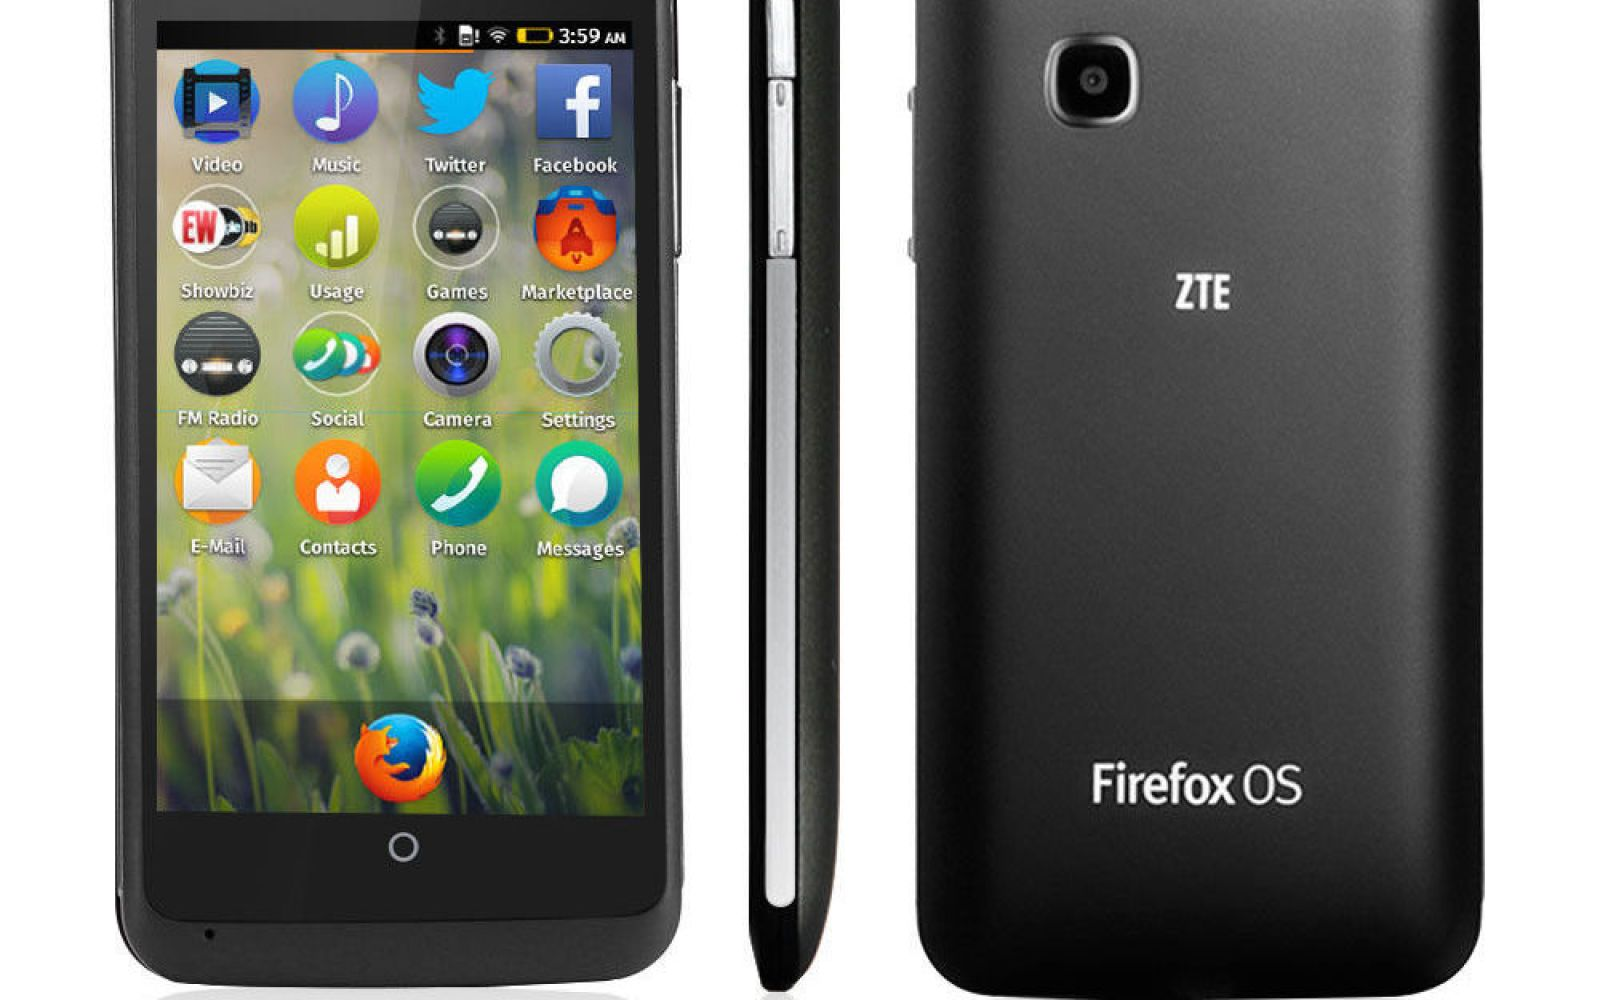 ZTE is selling the Firefox OS phone direct via Ebay for $100 shipped